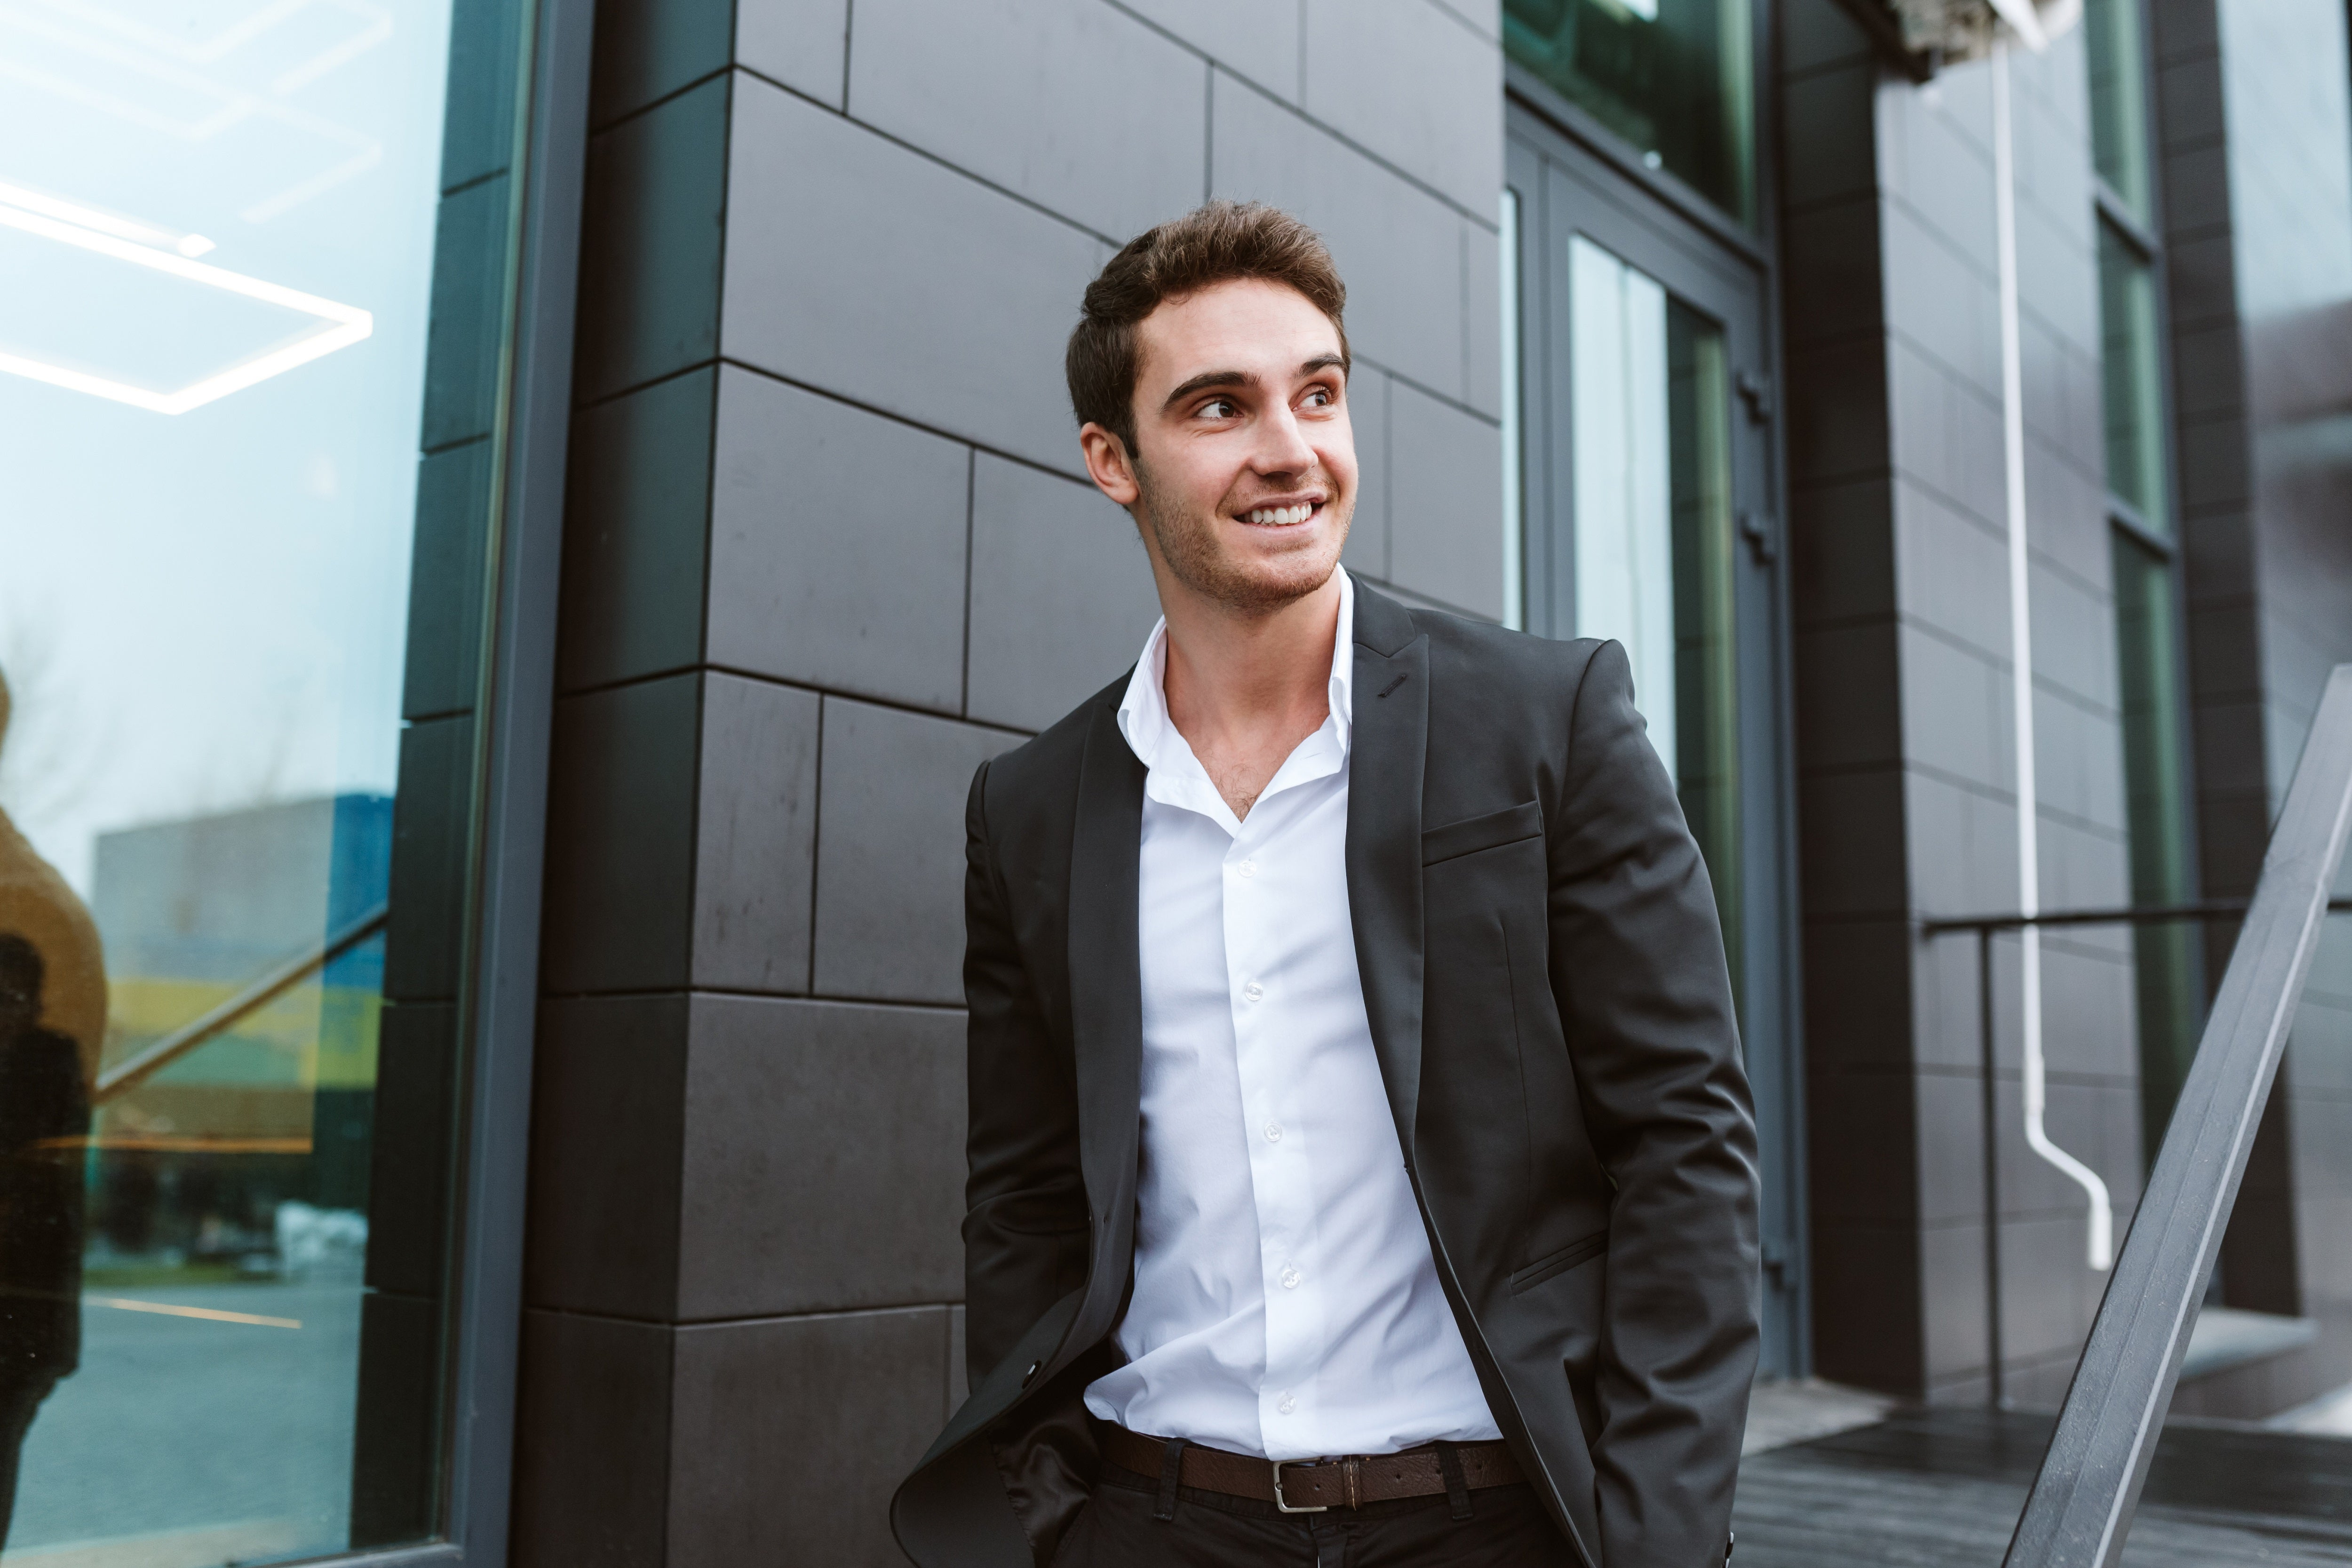 Smiling business man in suit standing outside office entrance.